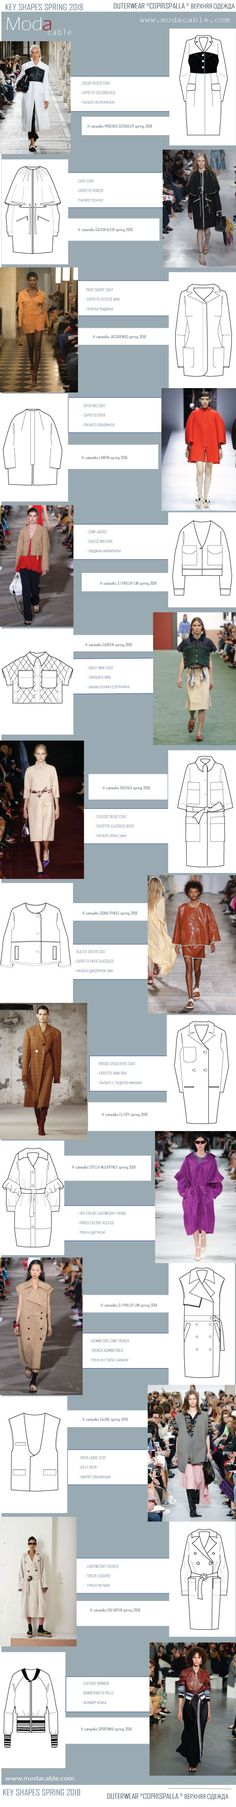 runway spring 2018 key shapes are already on modacable.com!!! follow us for more!!!